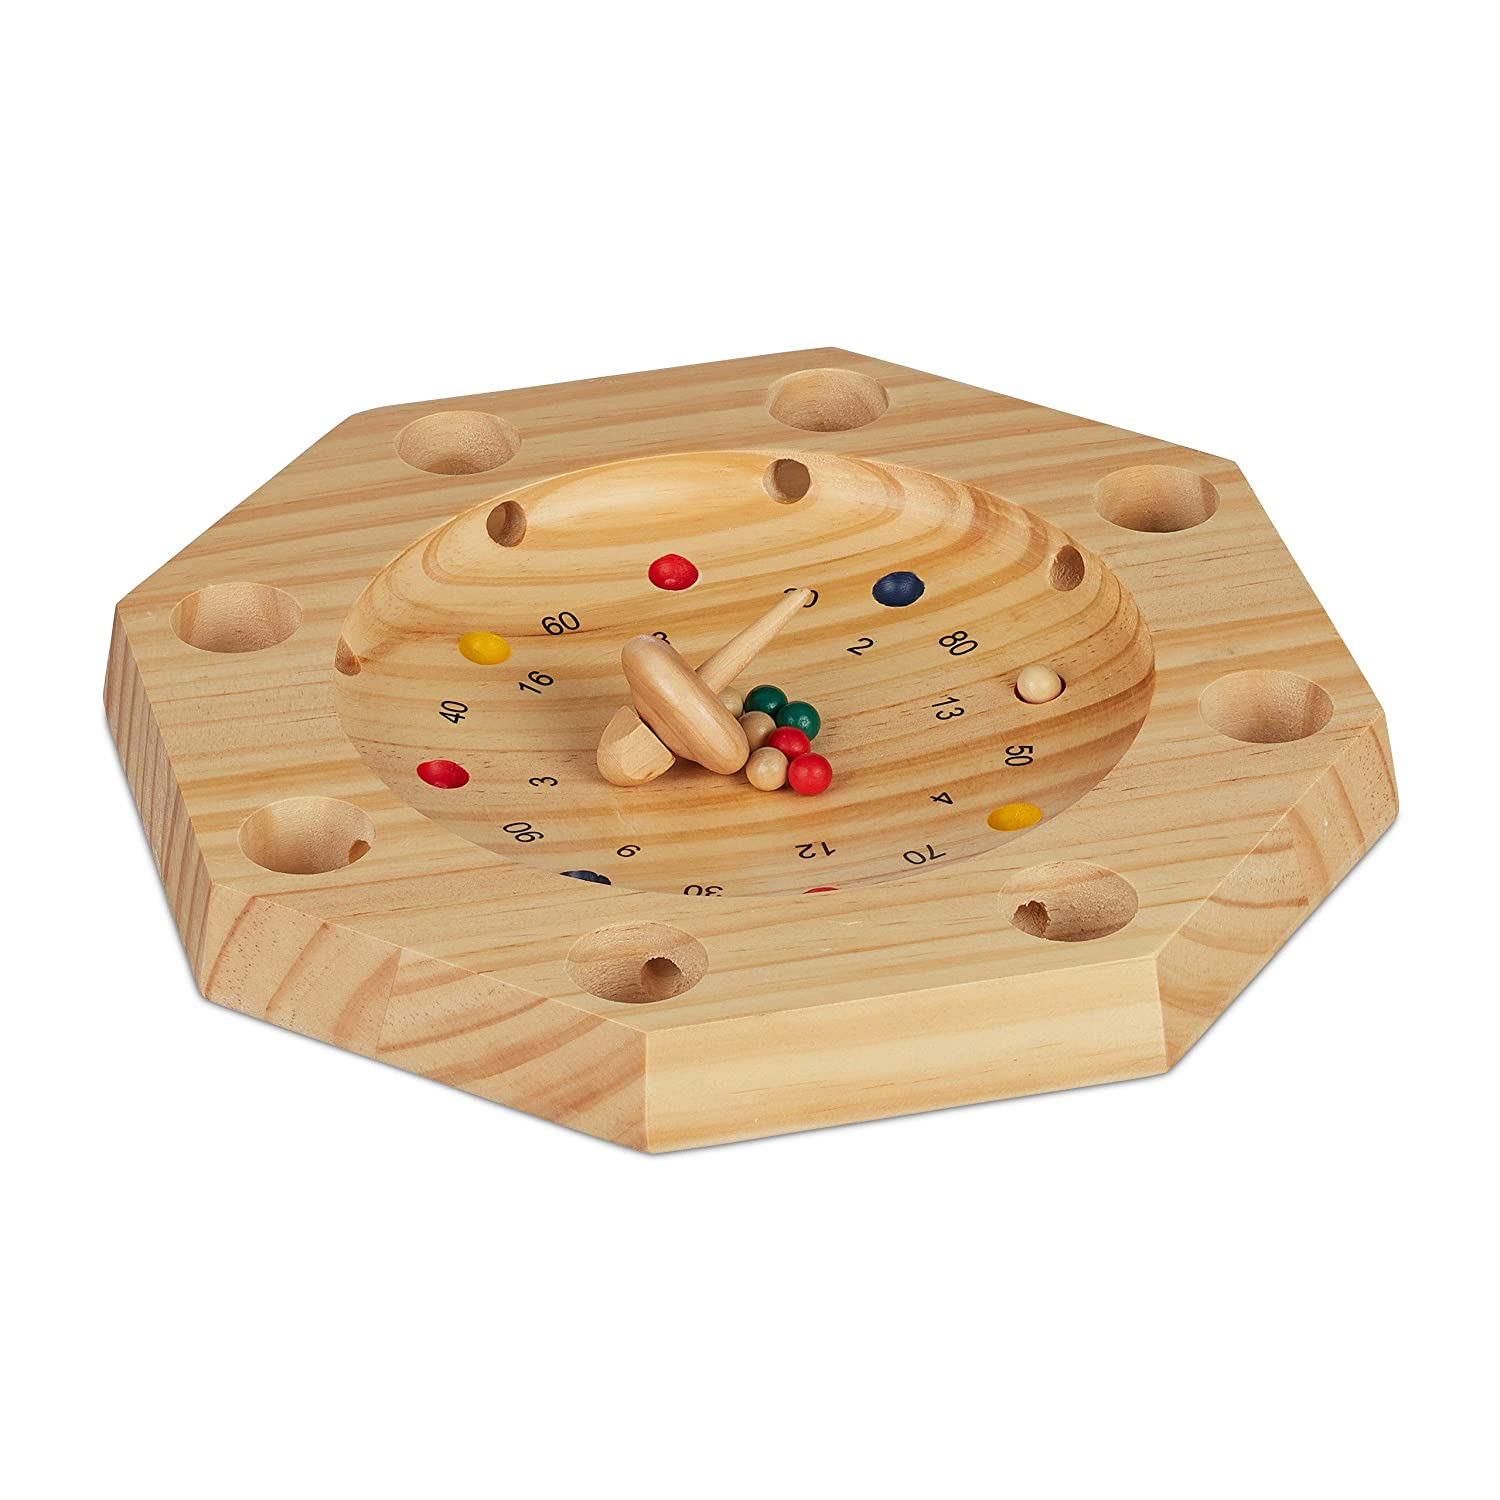 Maths Natural Wood Children /& Adults 16 Holes Relaxdays Tyrolean Roulette Octagonal Wooden Game HxW: 3x28 cm